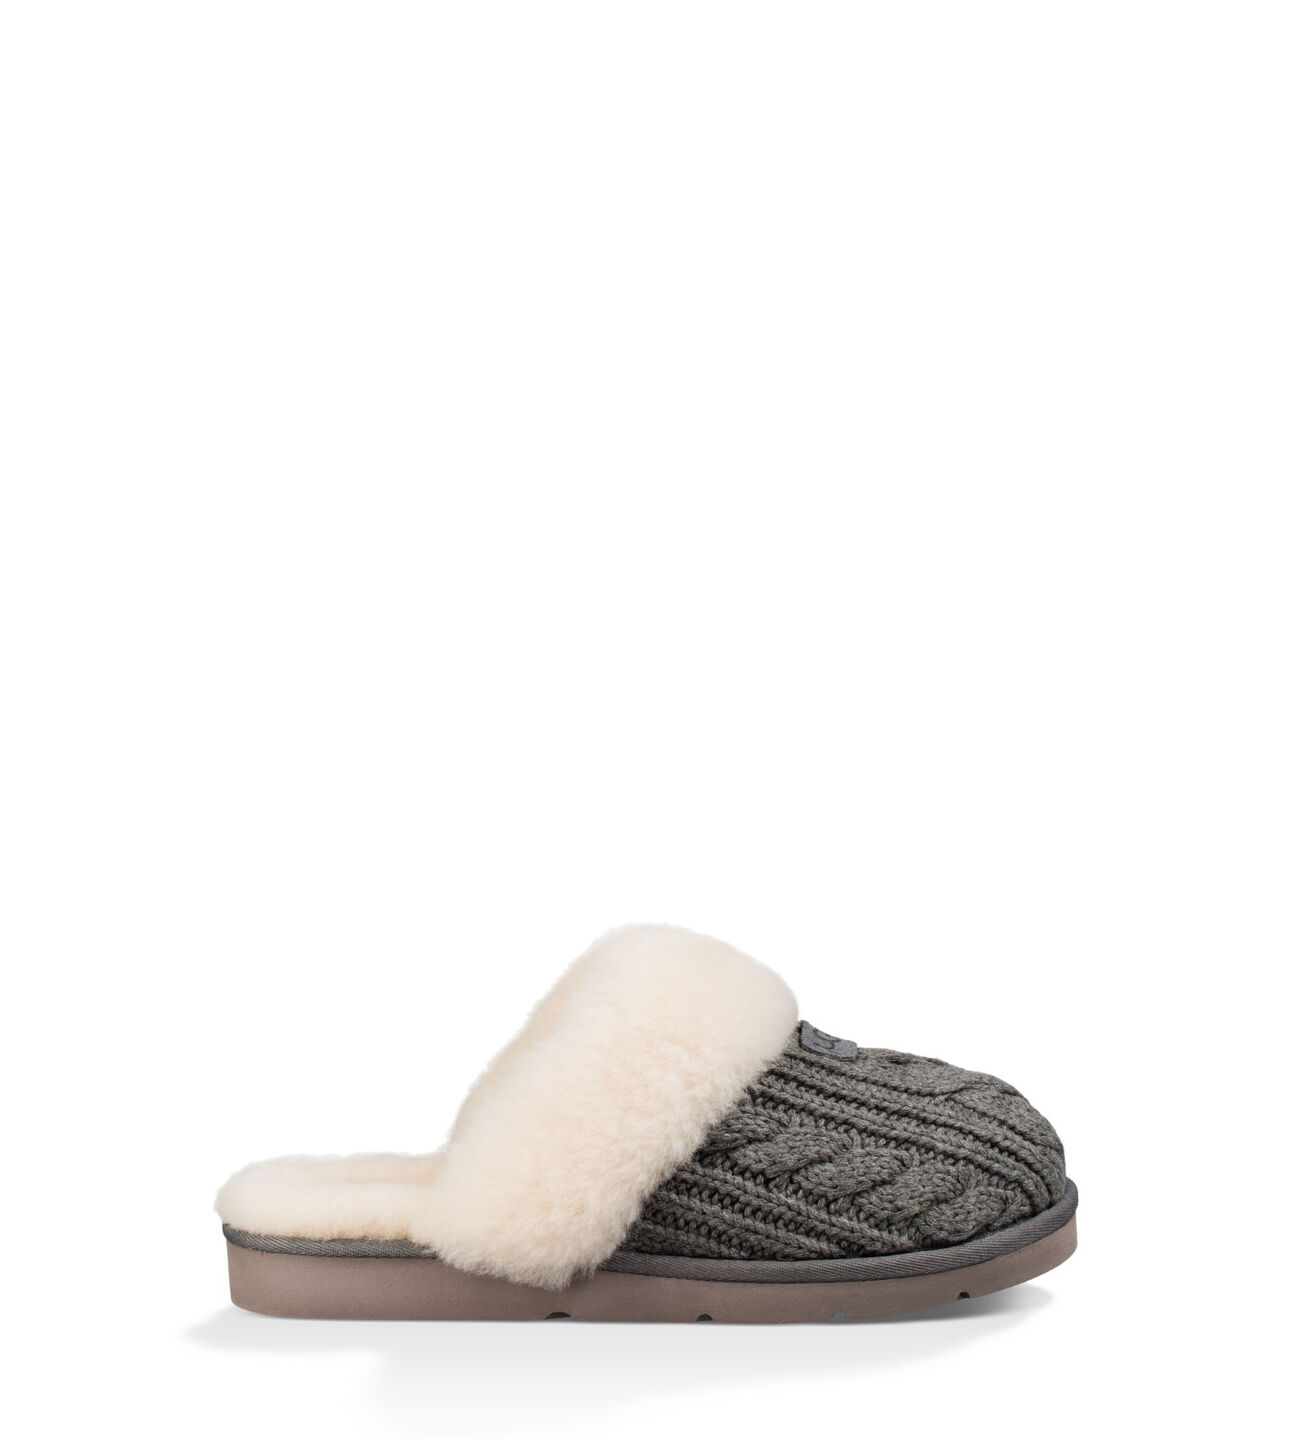 cef0ecd1f35 Black Knit Ugg Slippers - cheap watches mgc-gas.com